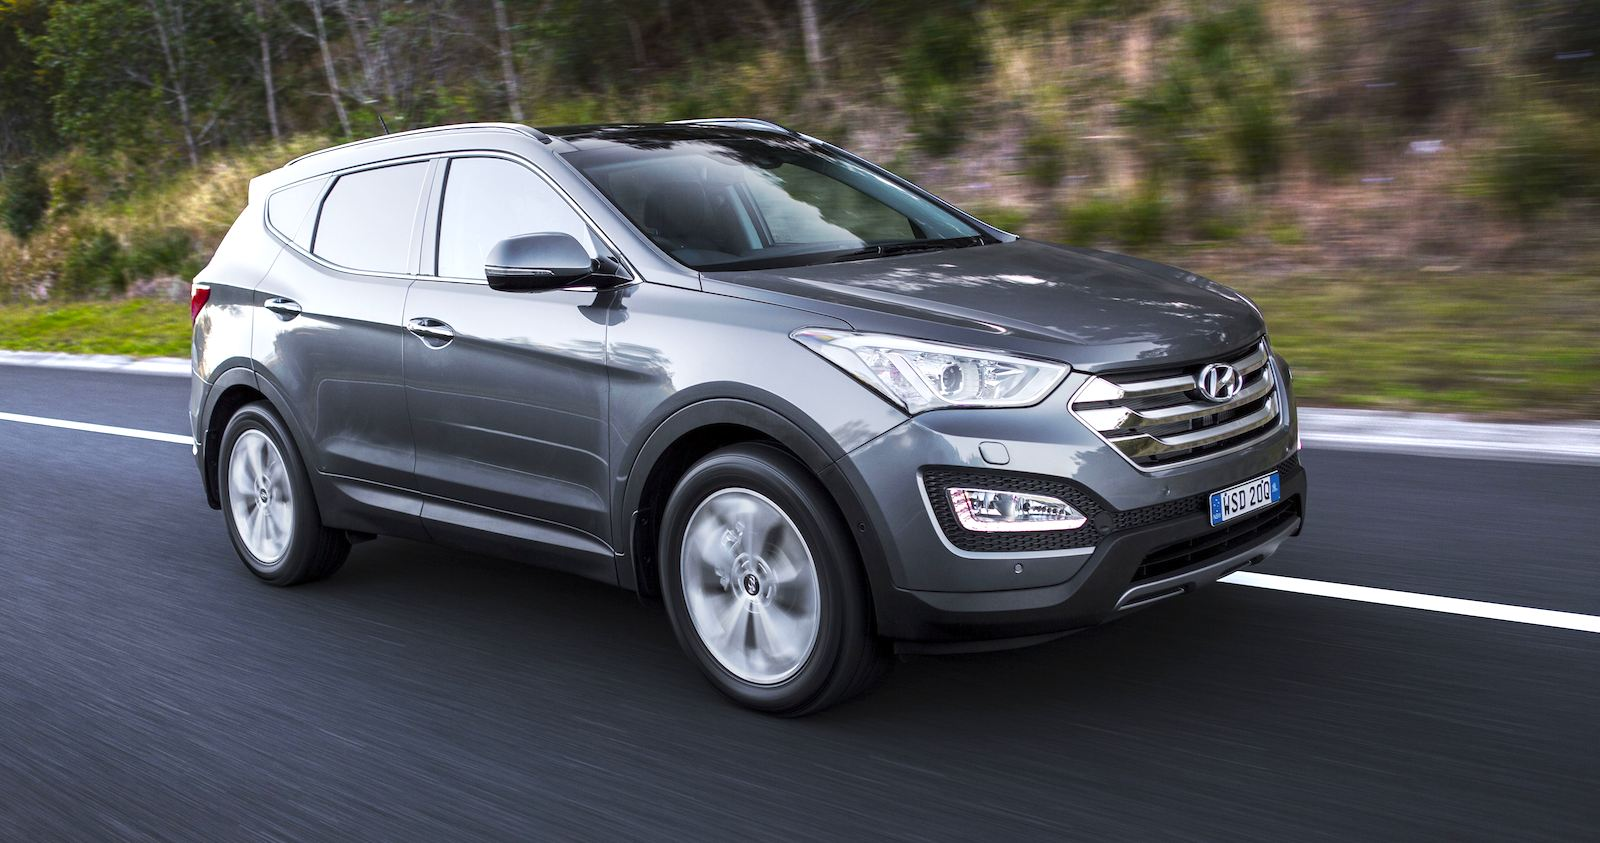 2015 hyundai santa fe pricing and specifications photos 1 of 2. Black Bedroom Furniture Sets. Home Design Ideas